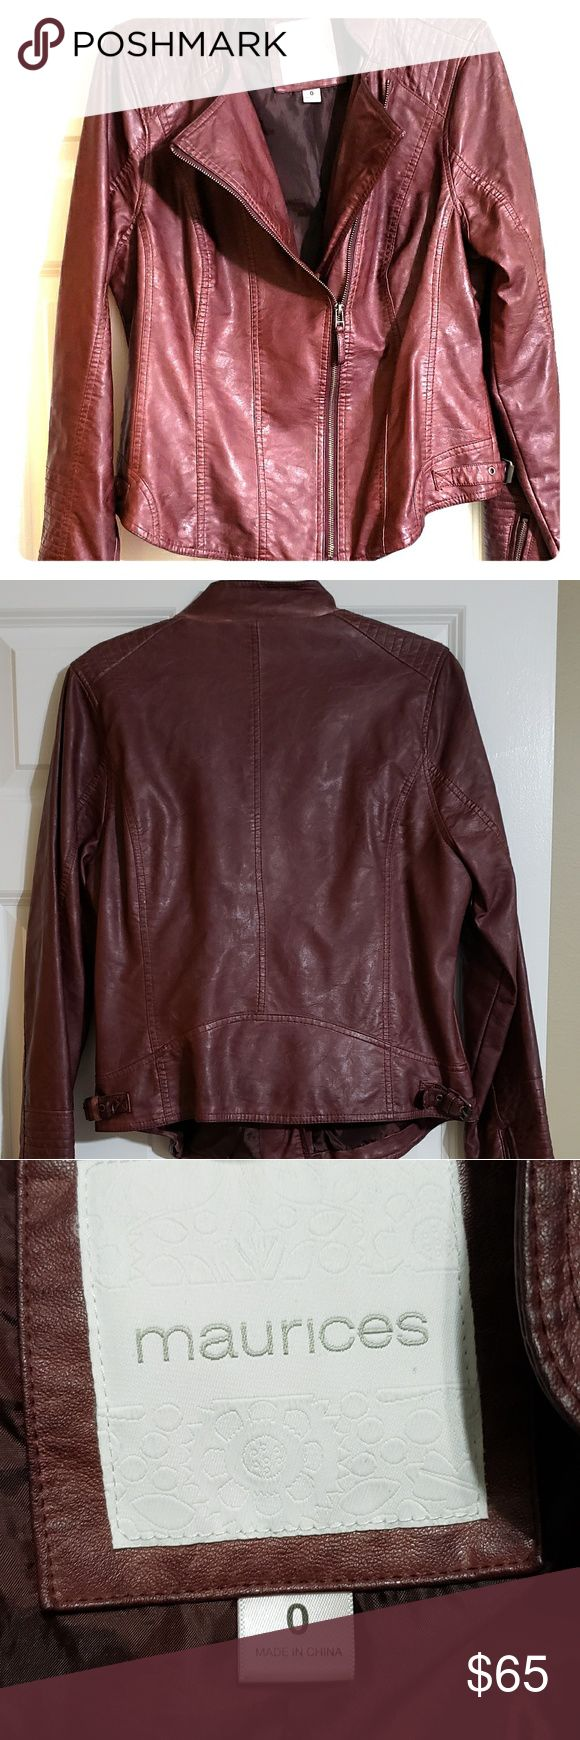 Maurices faux leather jacket Burnt burgundy colored faux